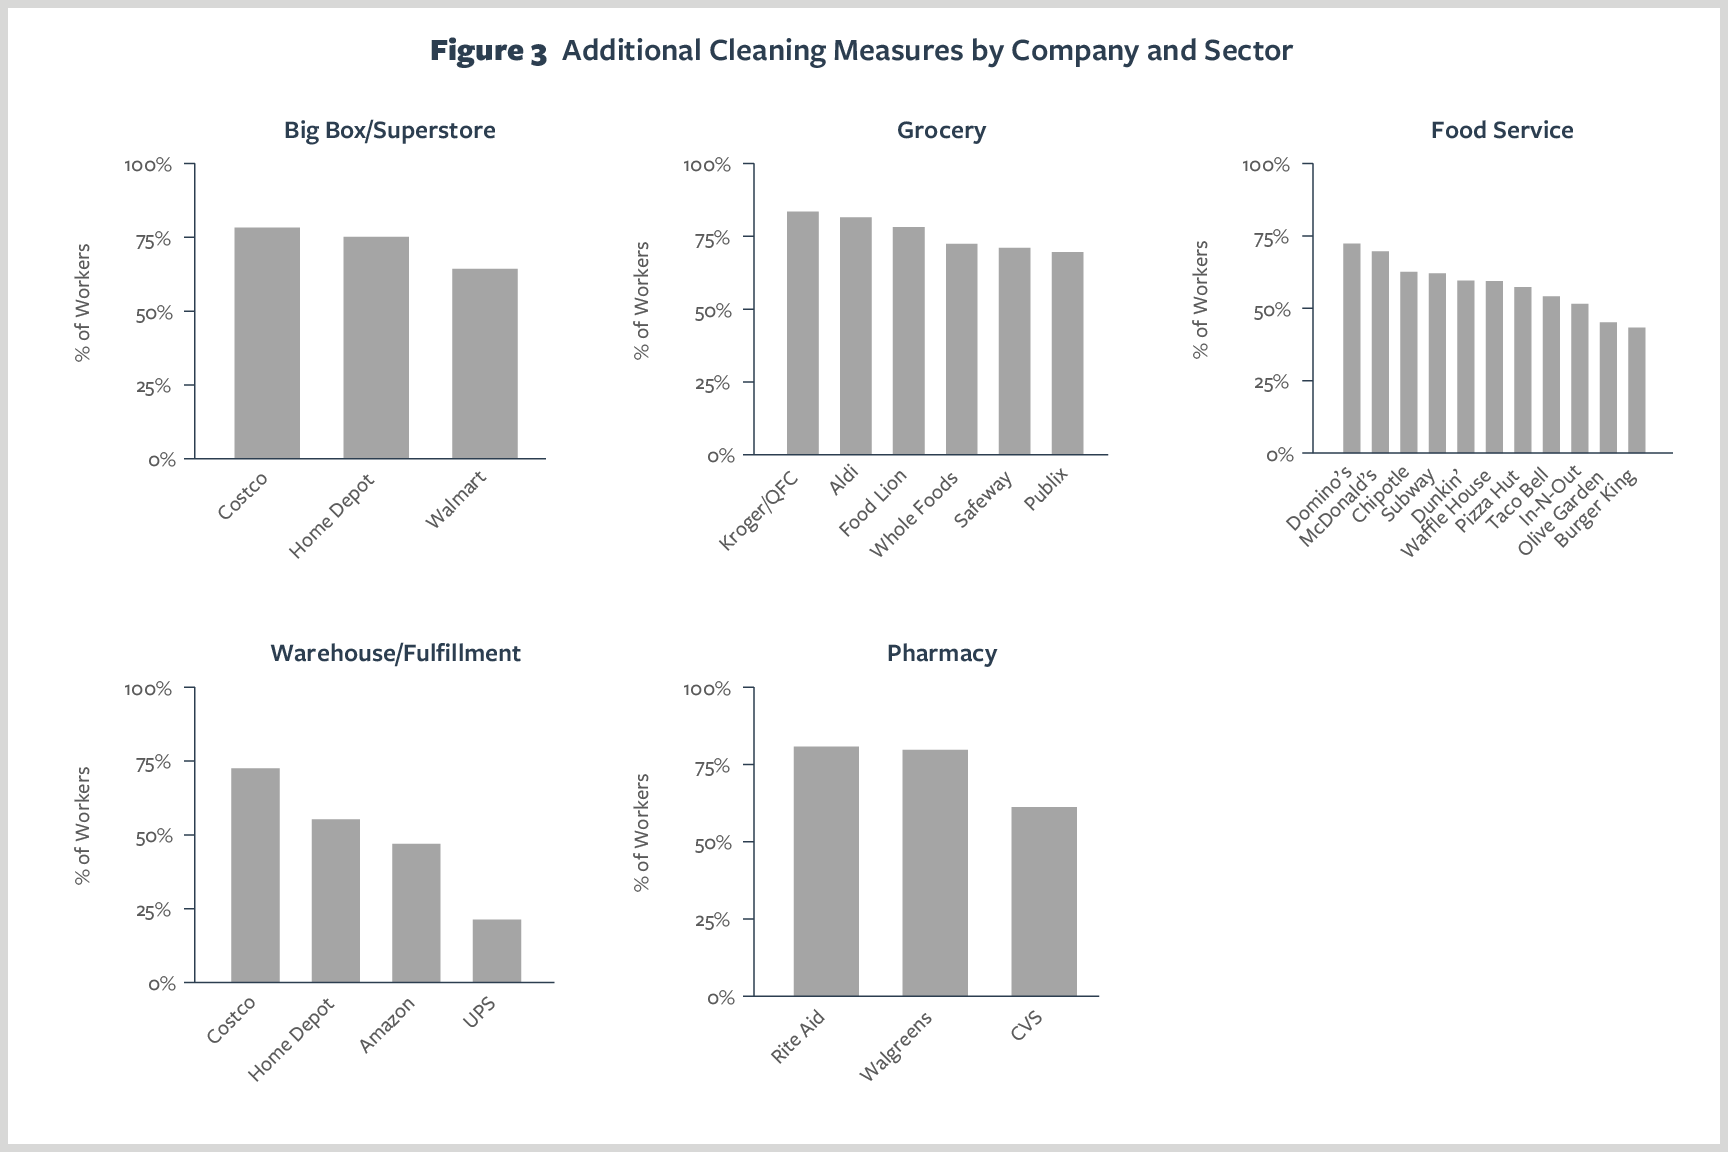 Figure 3. Additional Cleaning Measures by Company and Sector